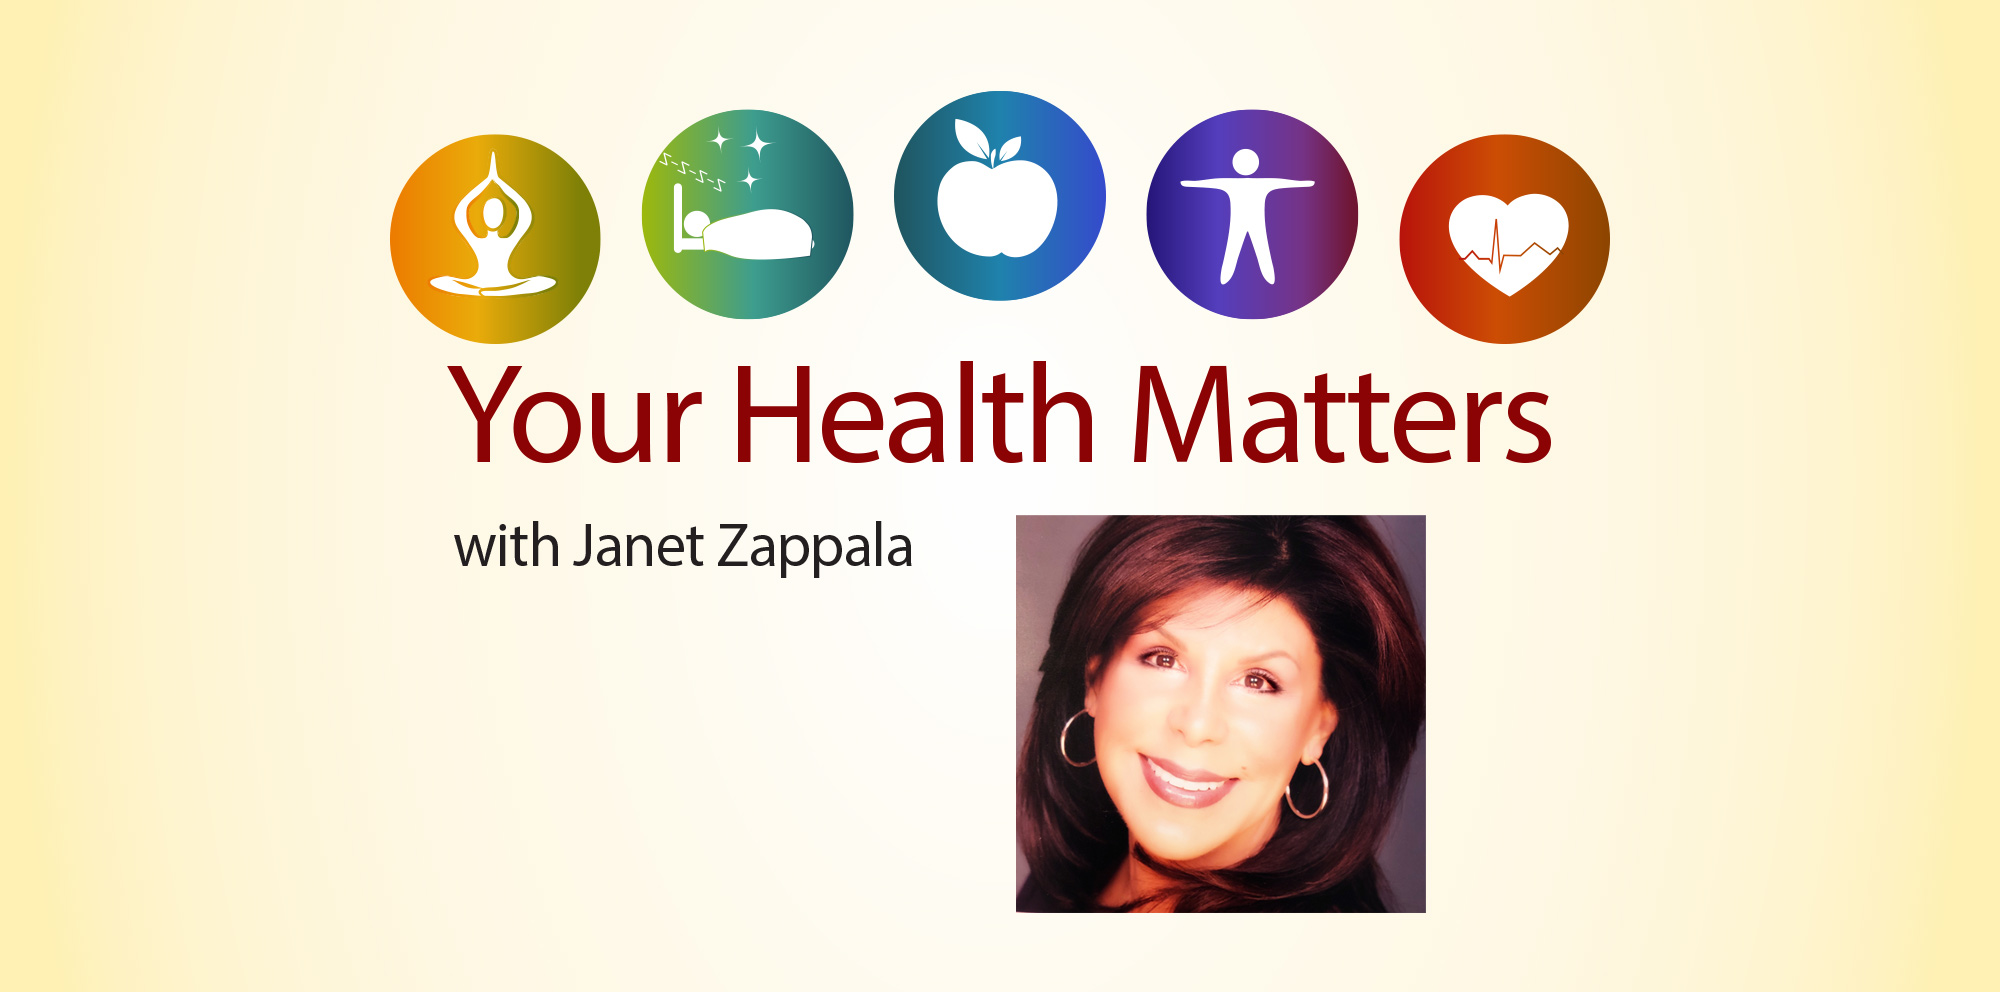 Your Health Matters - with Janet Zappala